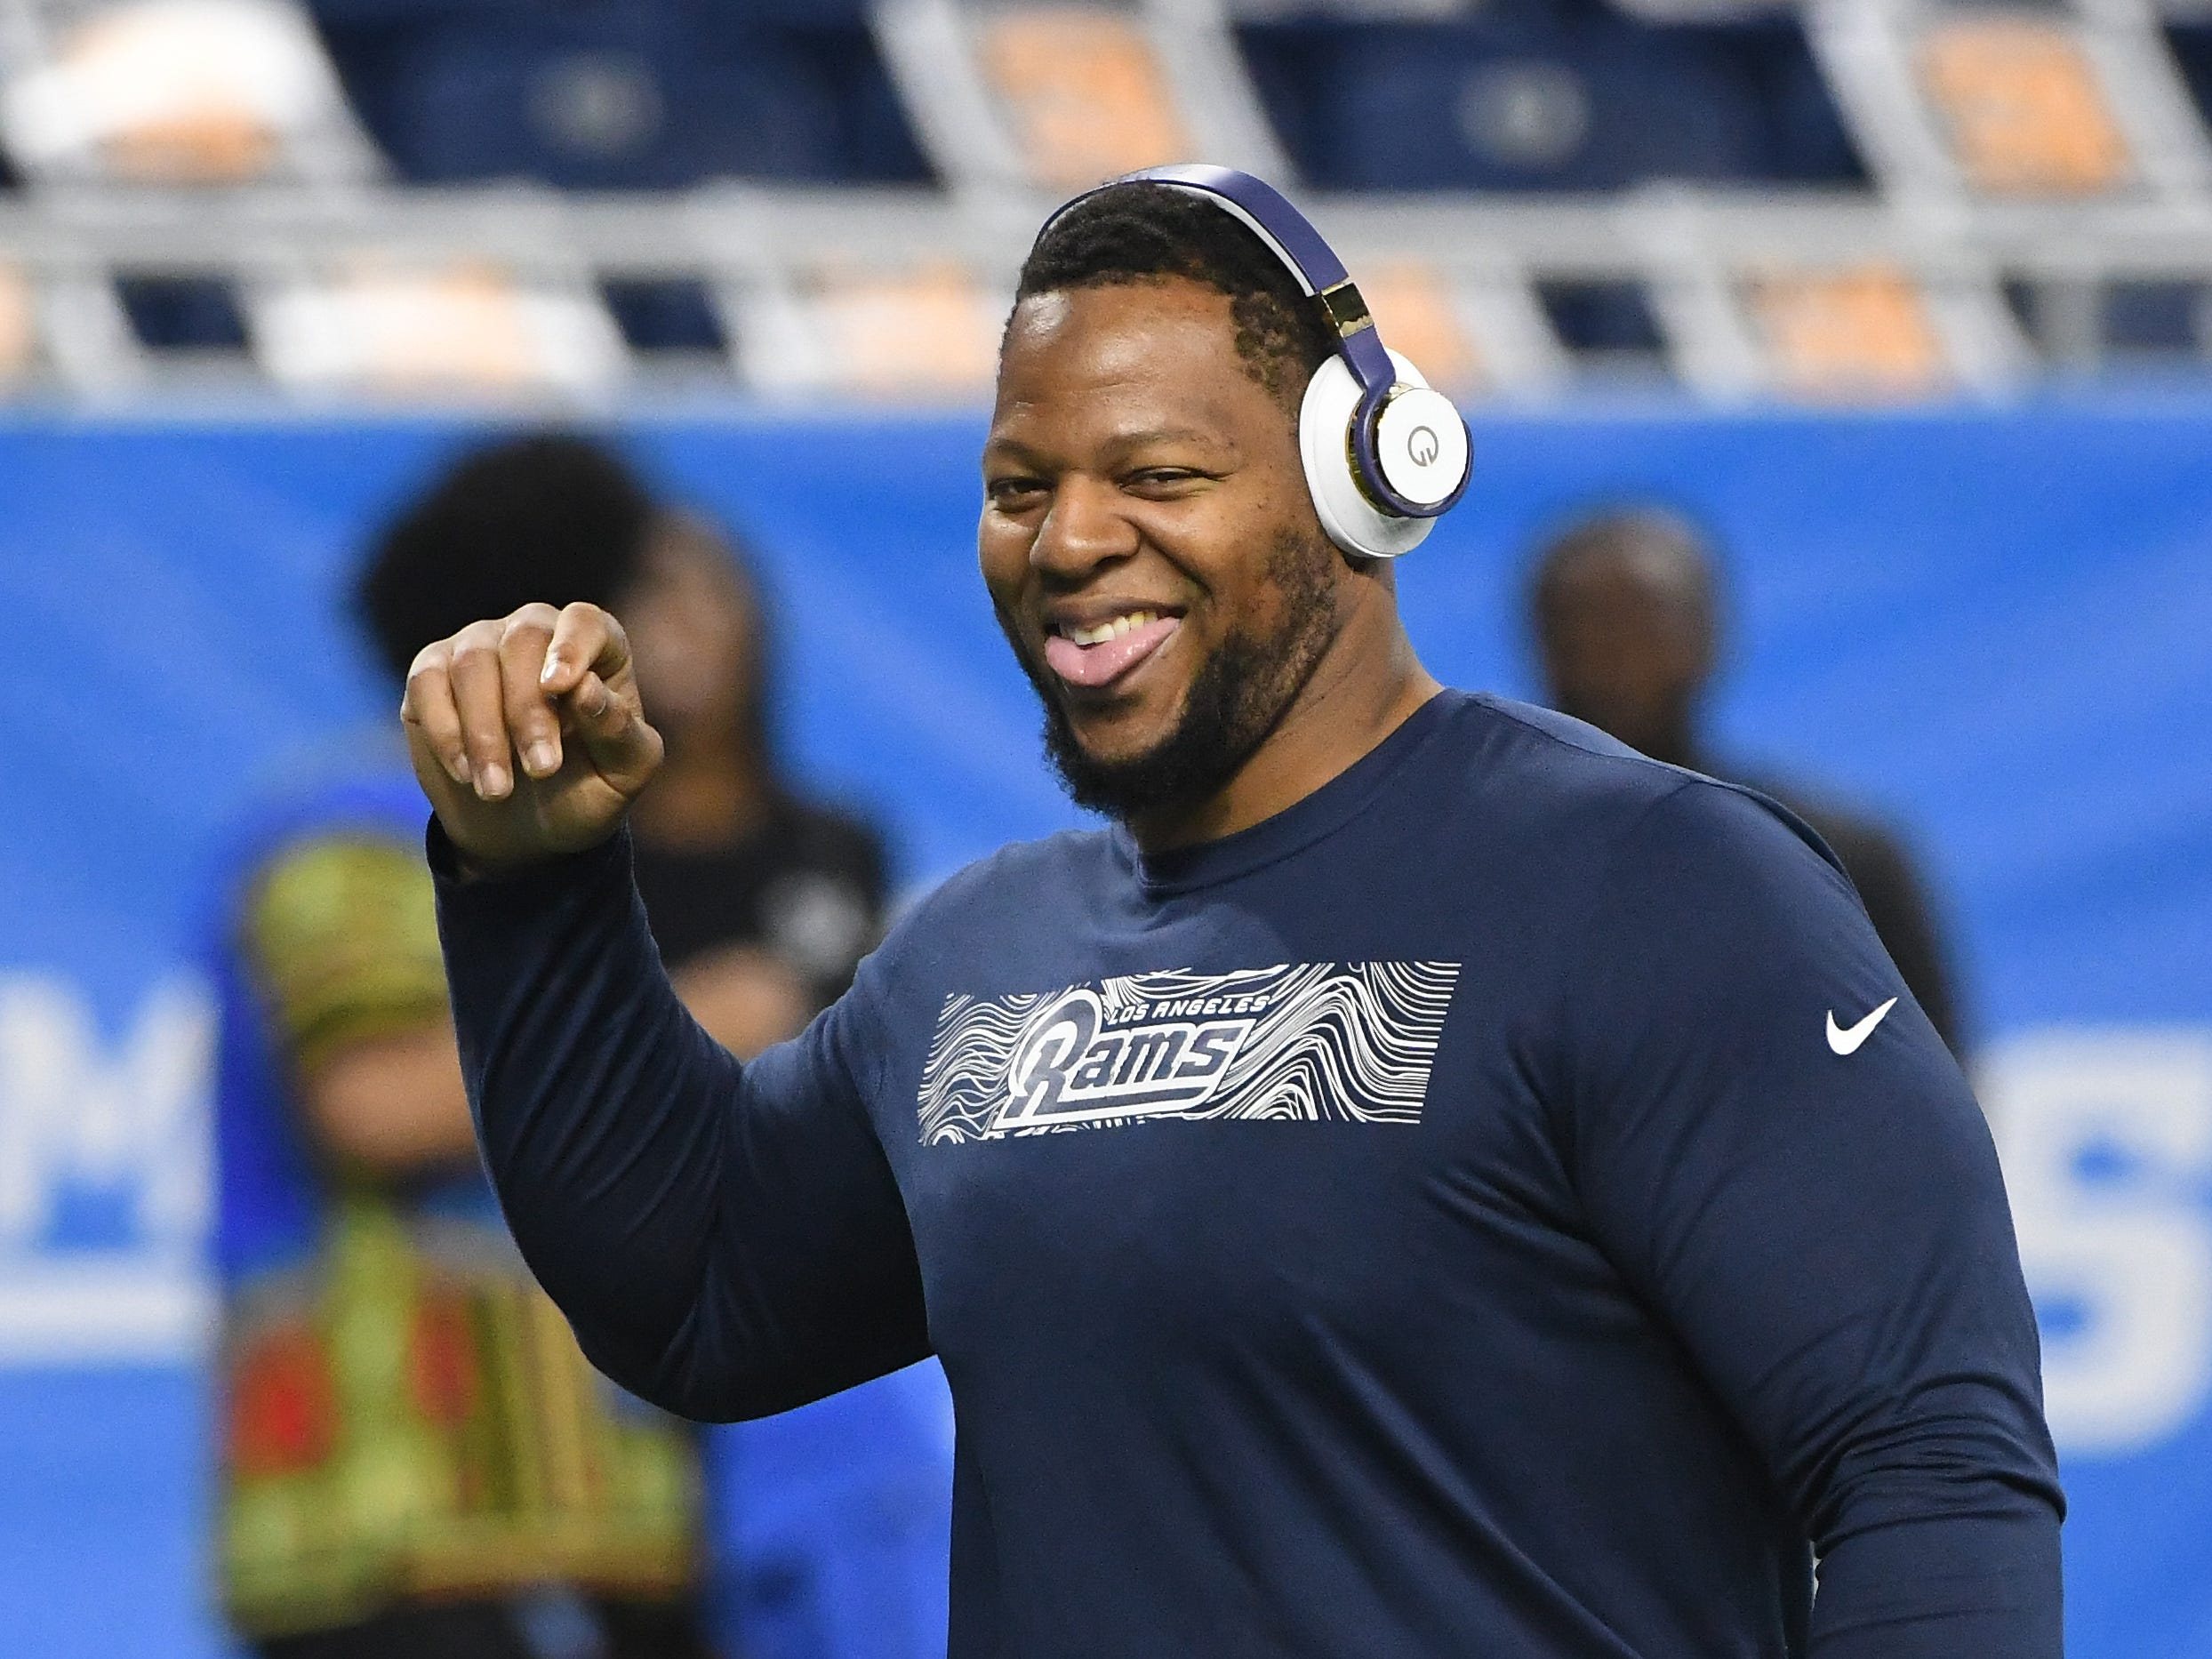 Former Detroit Lions, Los Angeles defensive tackle Ndamukong Suh leaves the field after warmups before Detroit takes on the Rams at Ford Field in Detroit, Michigan on December 2, 2018.